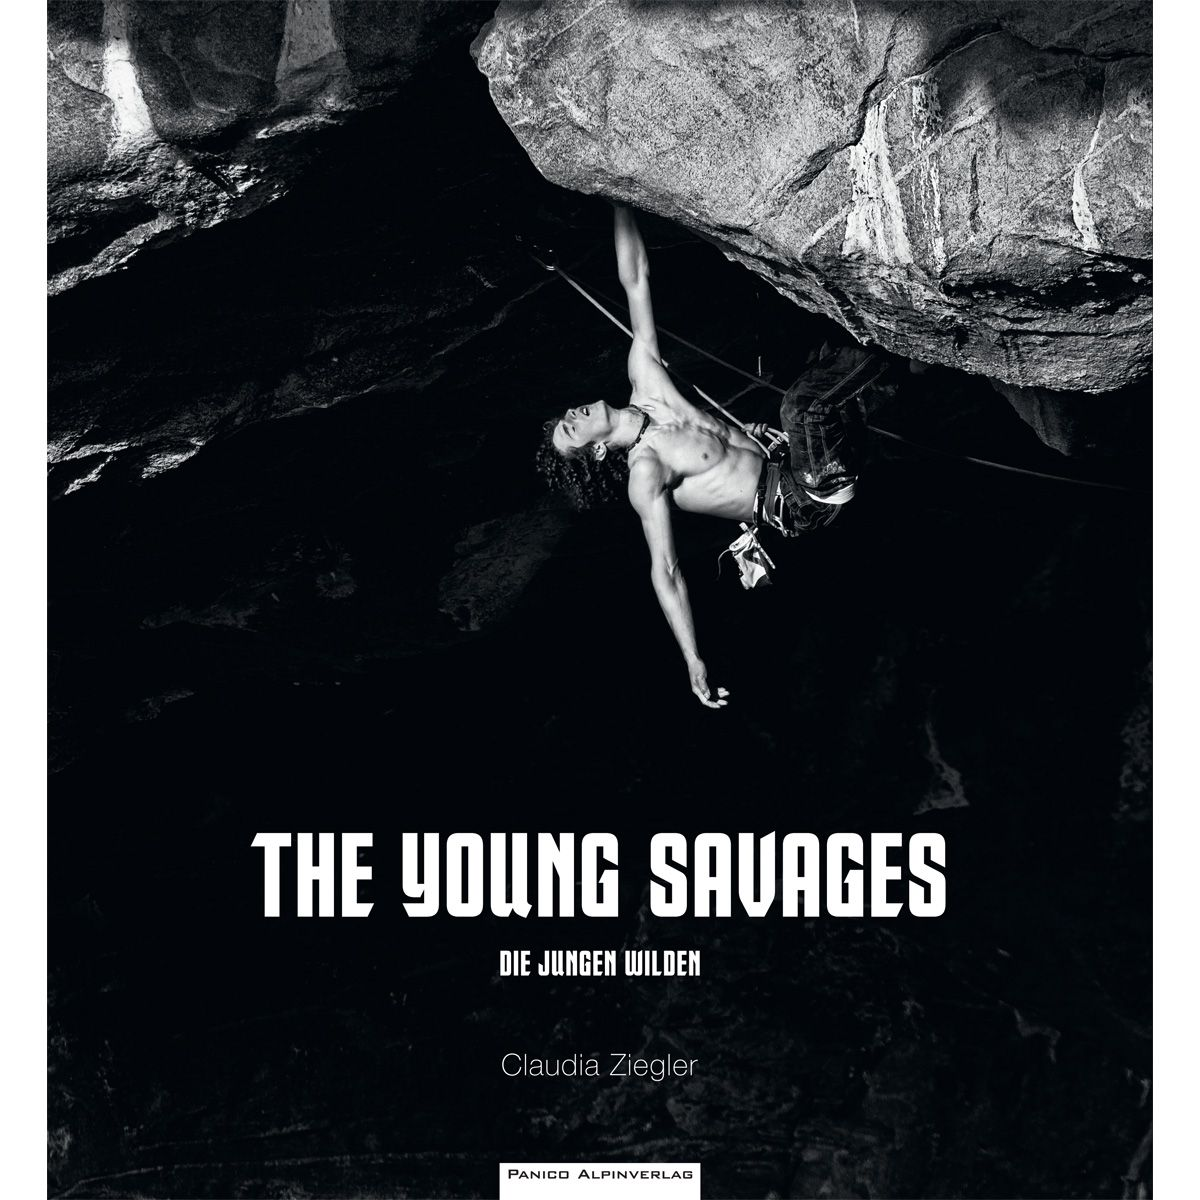 Image of Panico The Young Savages - Die jungen Wilden